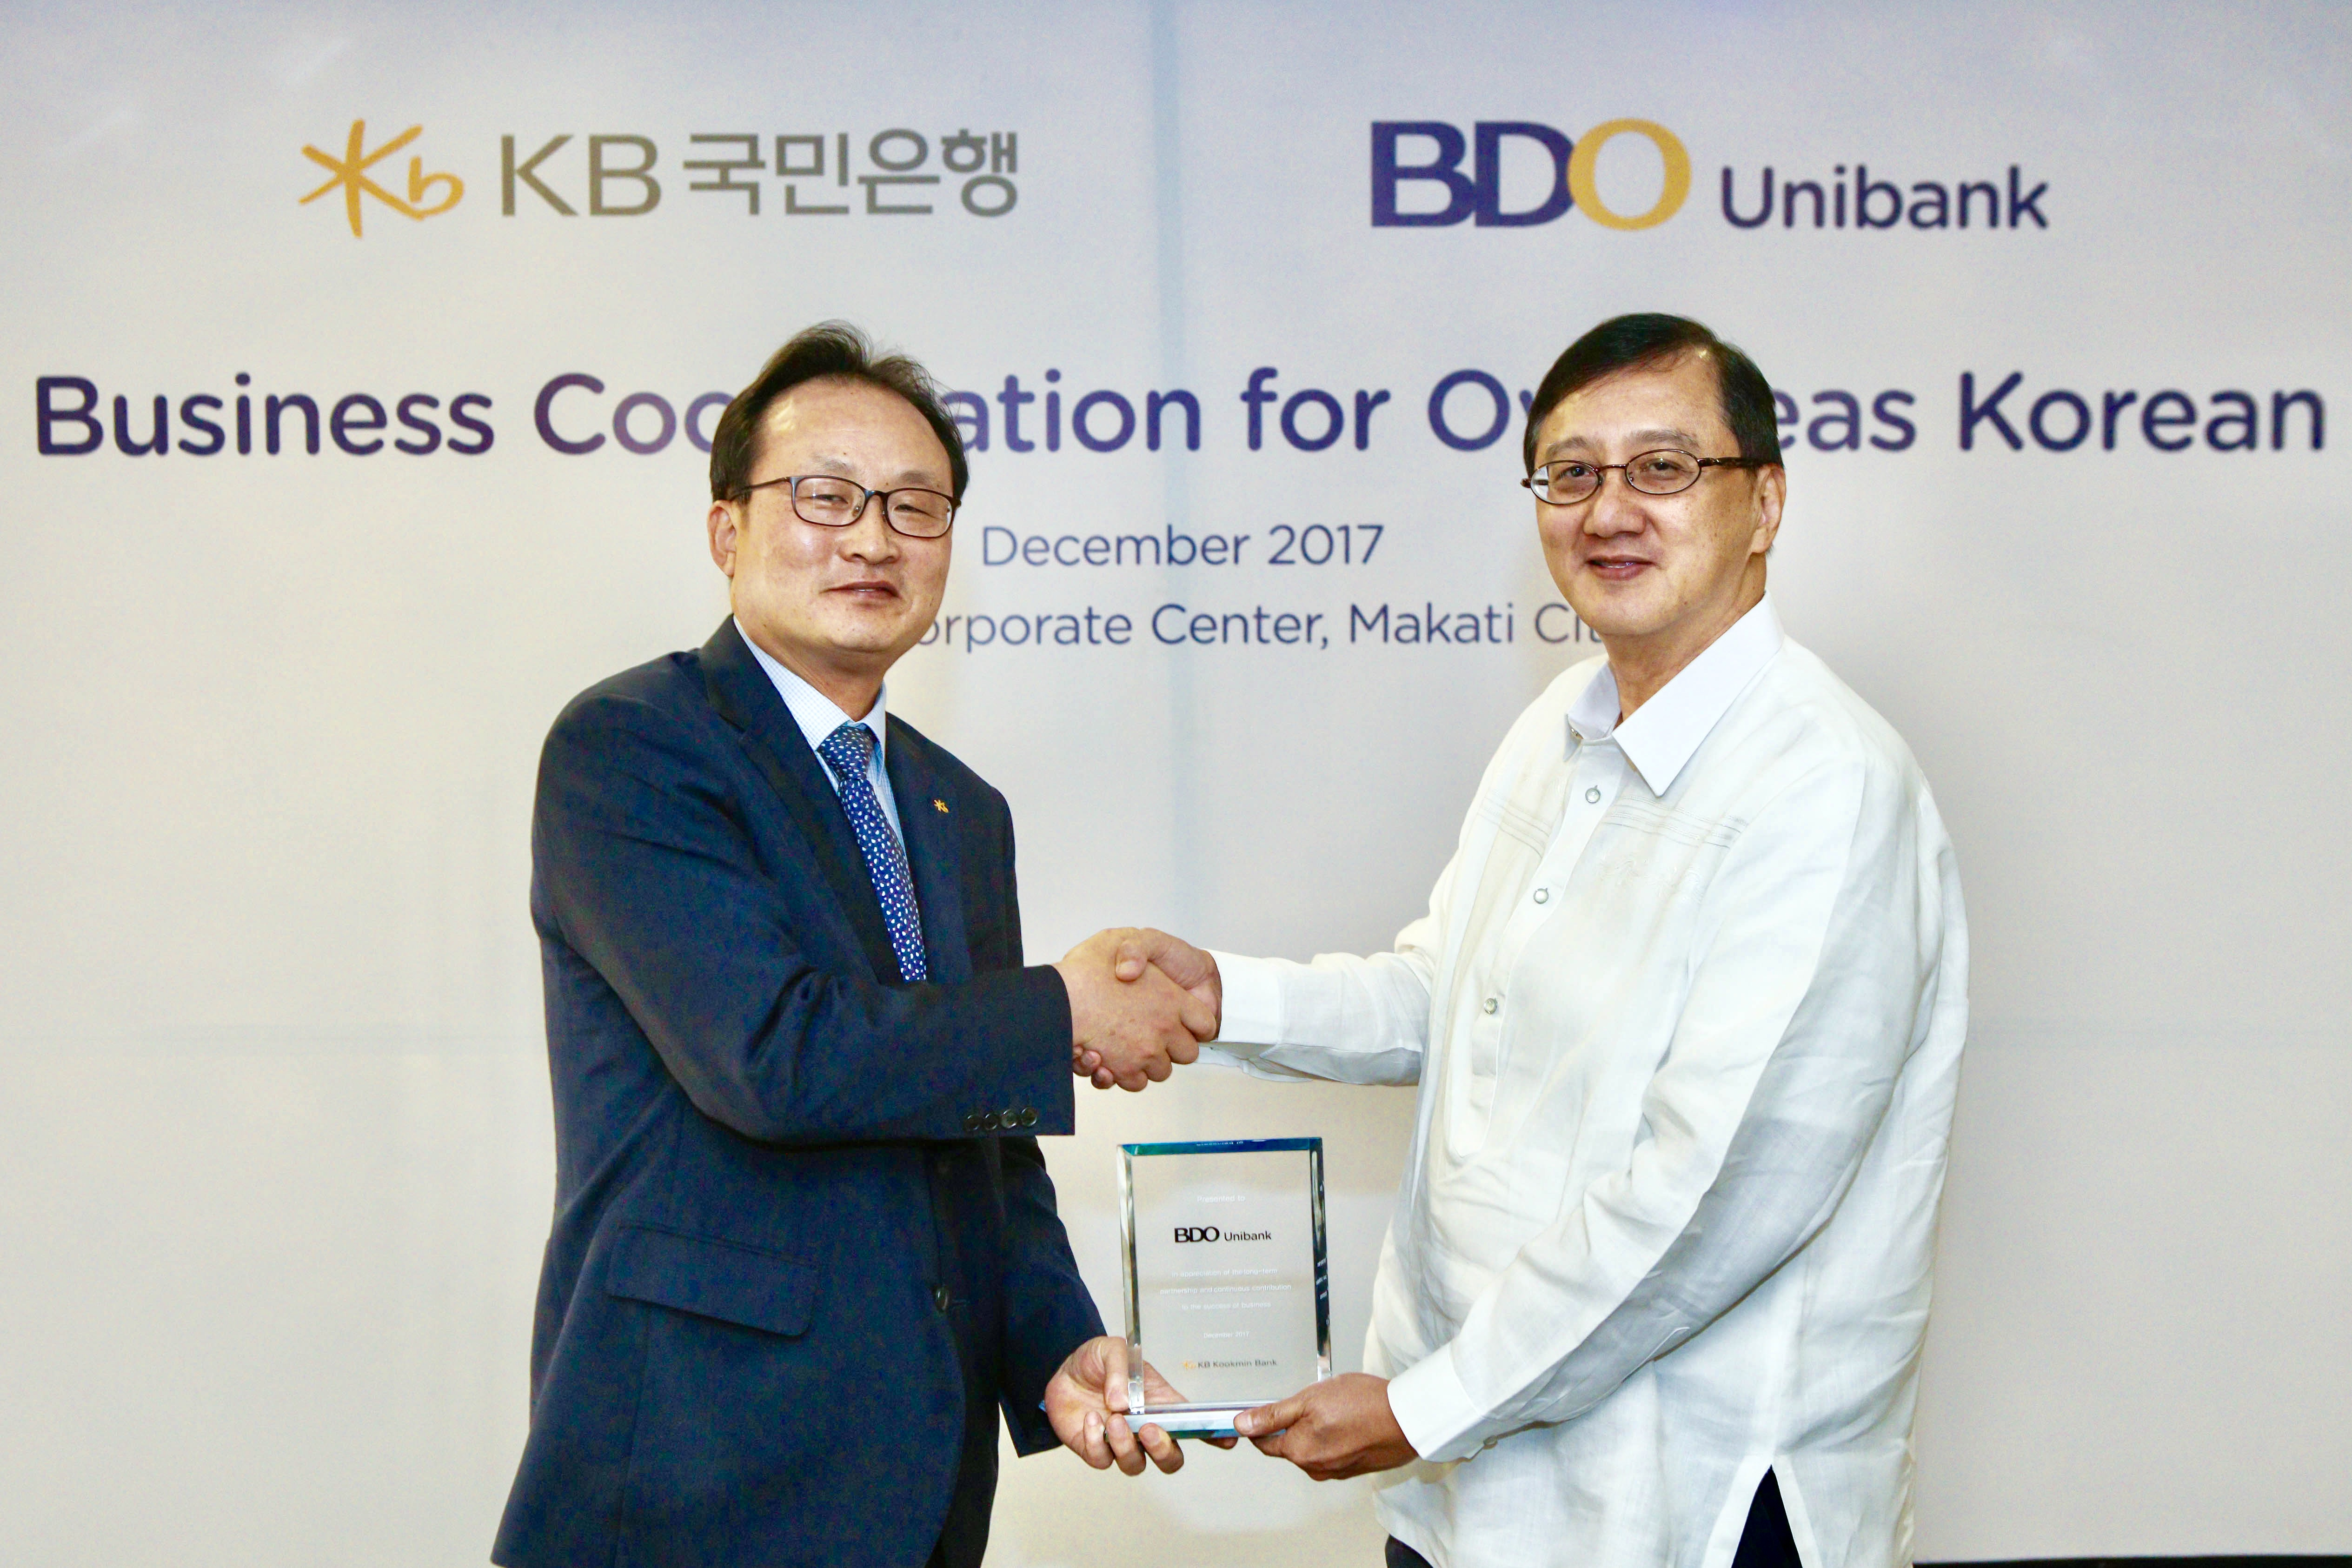 KB Kookmin Bank Lee Hwan-ju (left), head of the Foreign Exchange Business Division of KB Kookmin Bank pose with Edmundo Soriano, vice president of BDO Unibank after signing an agreement in the Philippines on Dec. 6.